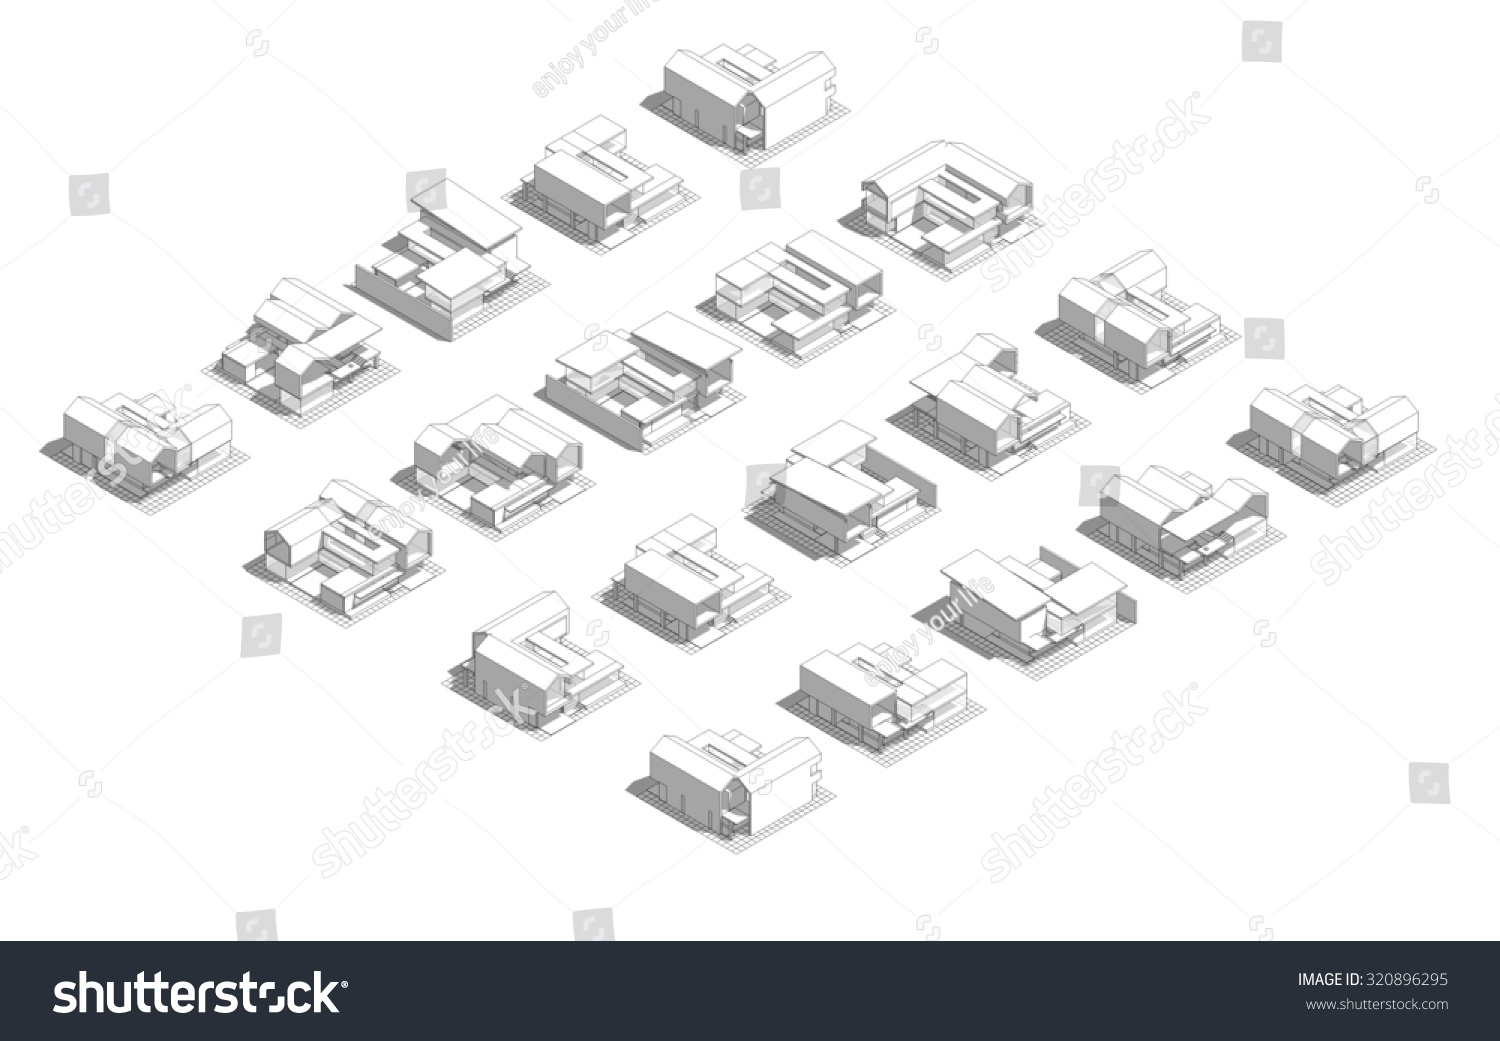 Mass Model 3d Wireframe Building Process Stock Illustration 320896295 Shutterstock